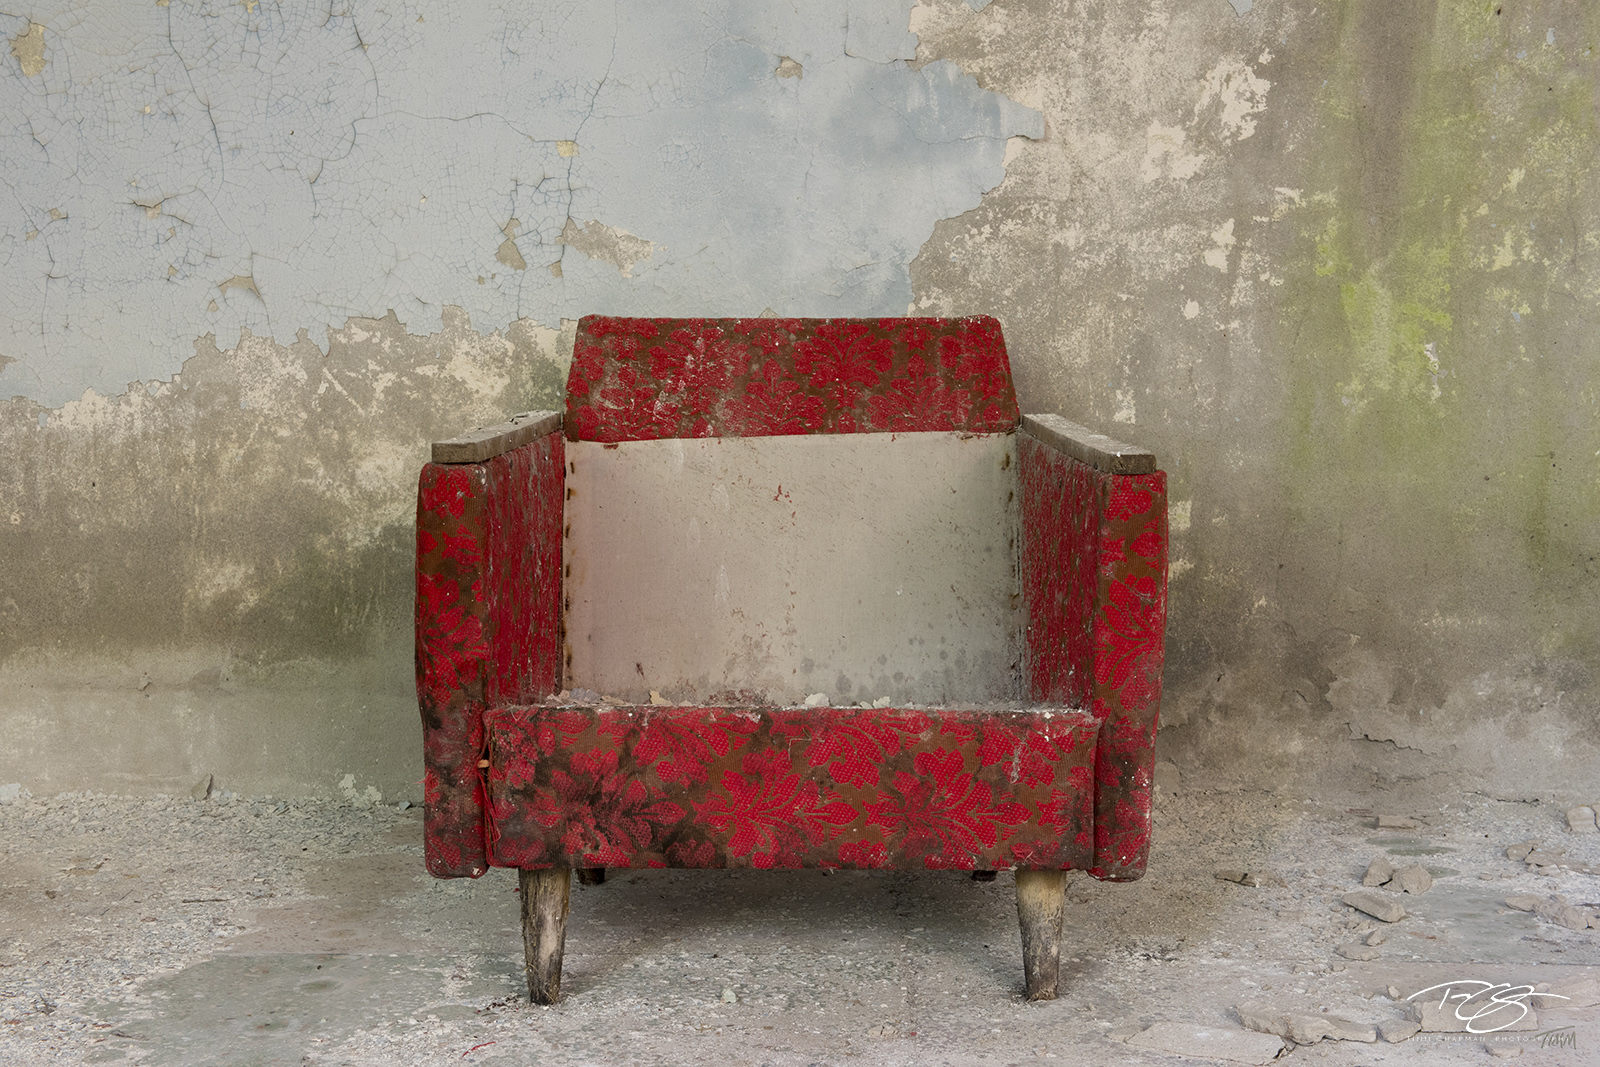 chernobyl, chornobyl, pripyat, exclusion zone, abandoned, forgotten, wasteland, radioactive, decay, peeling paint, red chair, upholstered, chair, old chair, worn, dirty, weathered, debris, chair, photo